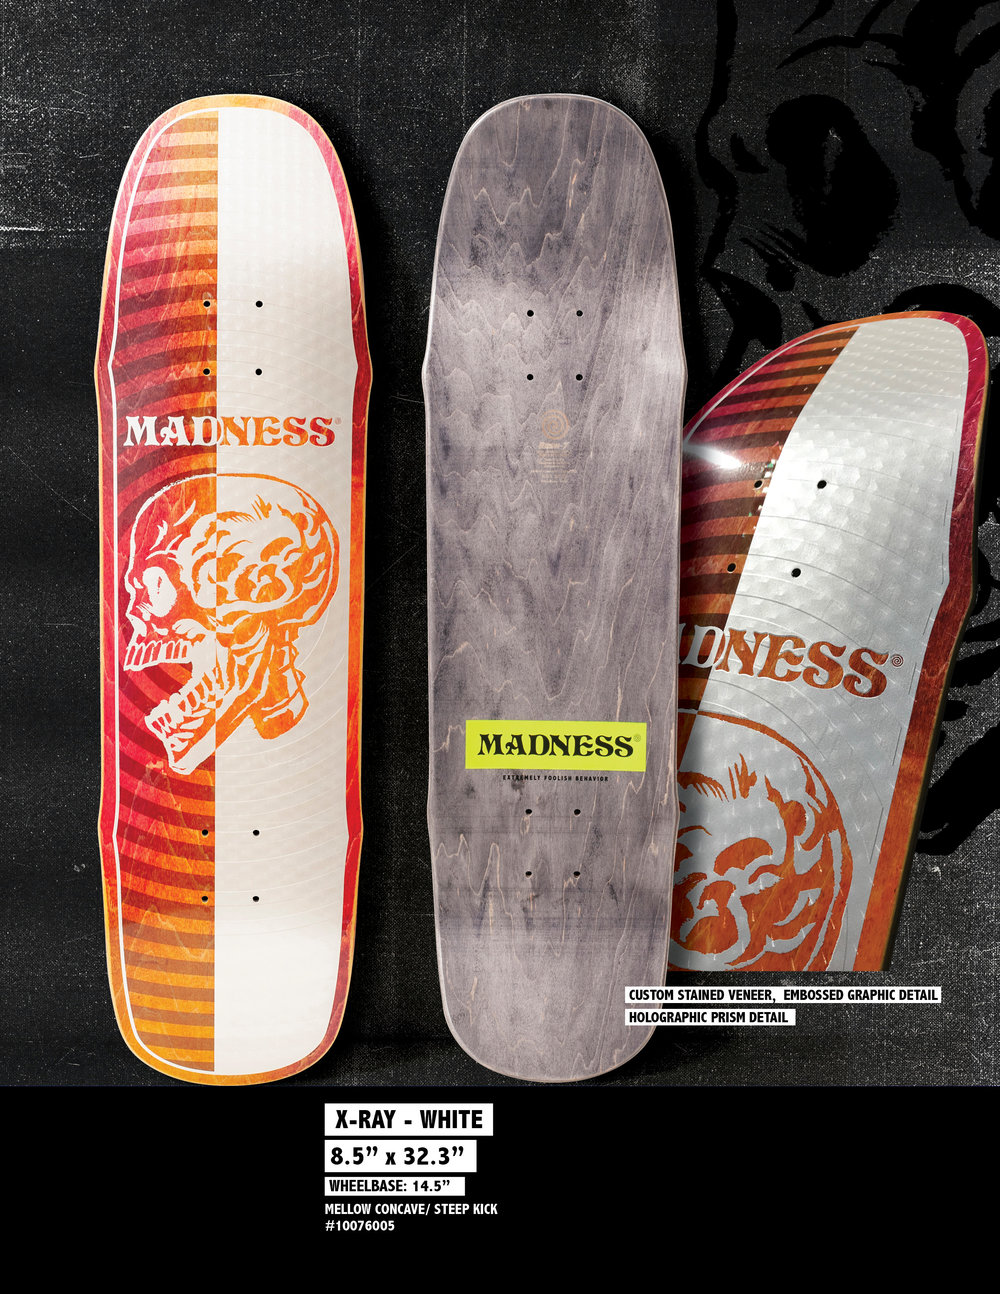 Madness_Spring_1914_x-ray__Skateboard_Deck.jpg